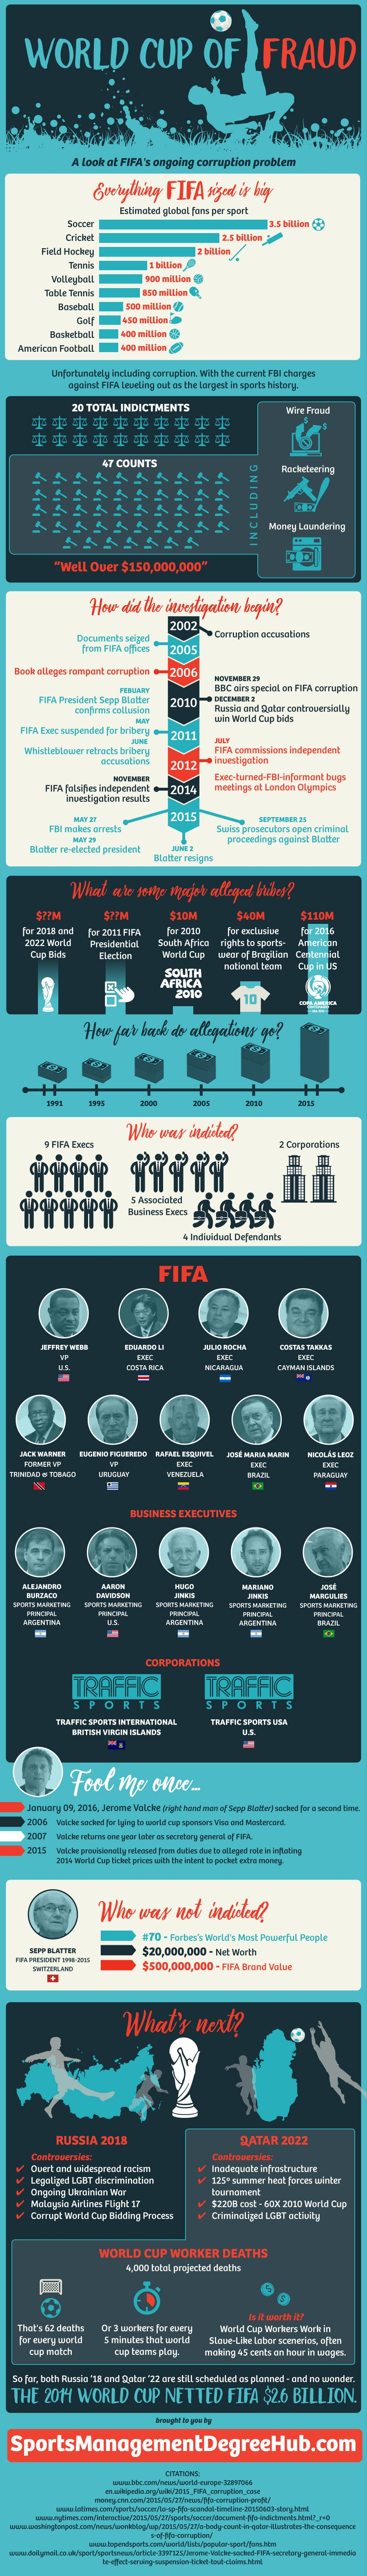 FIFA: A World Cup of Fraud